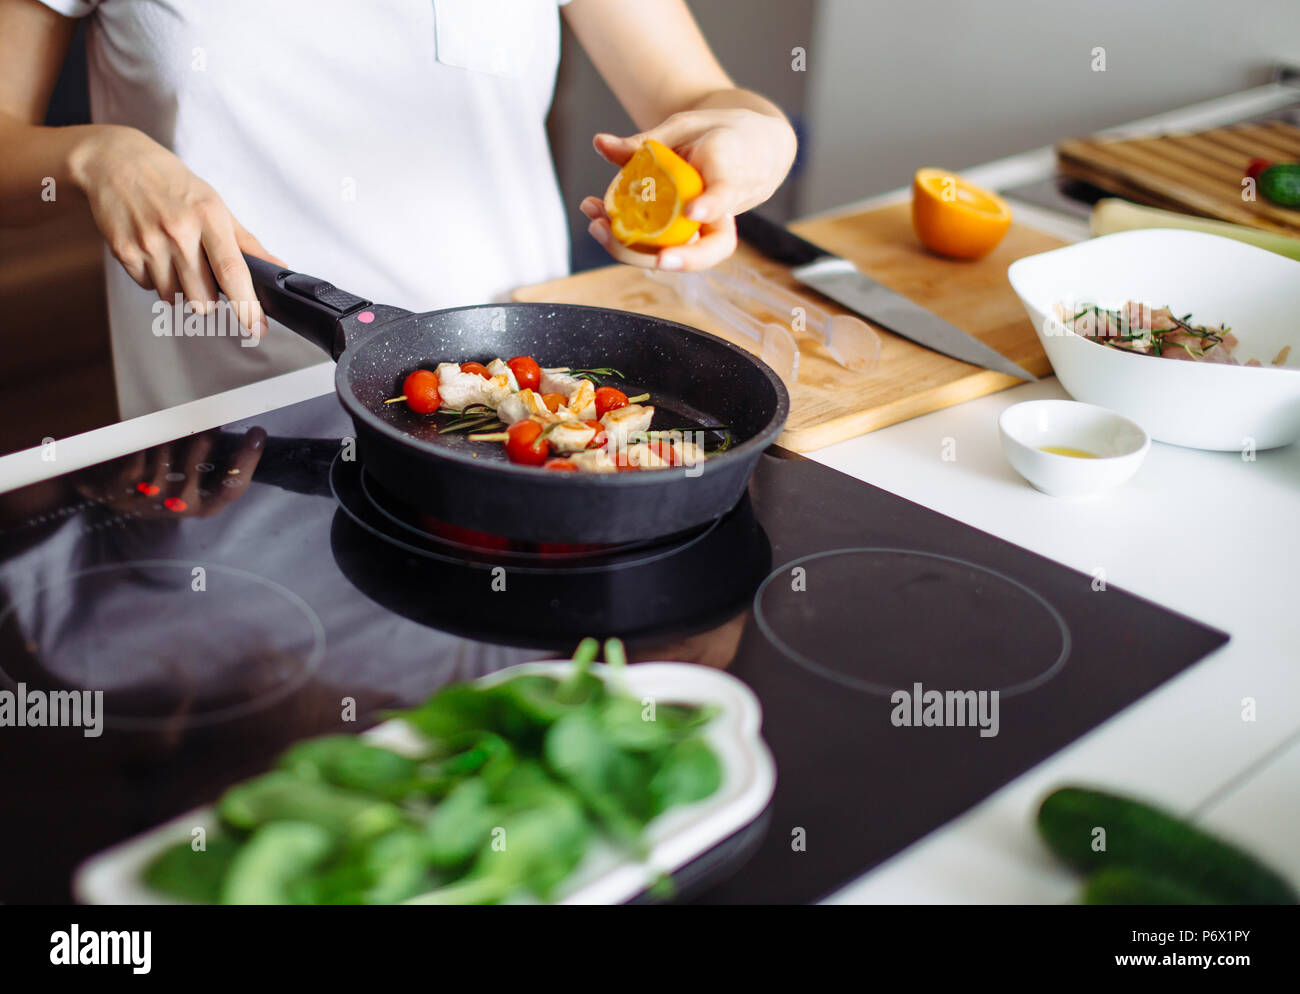 Cropped view of young happy housewife frying chicken meat with orange juice for dinner on glass-ceramic stove. - Stock Image